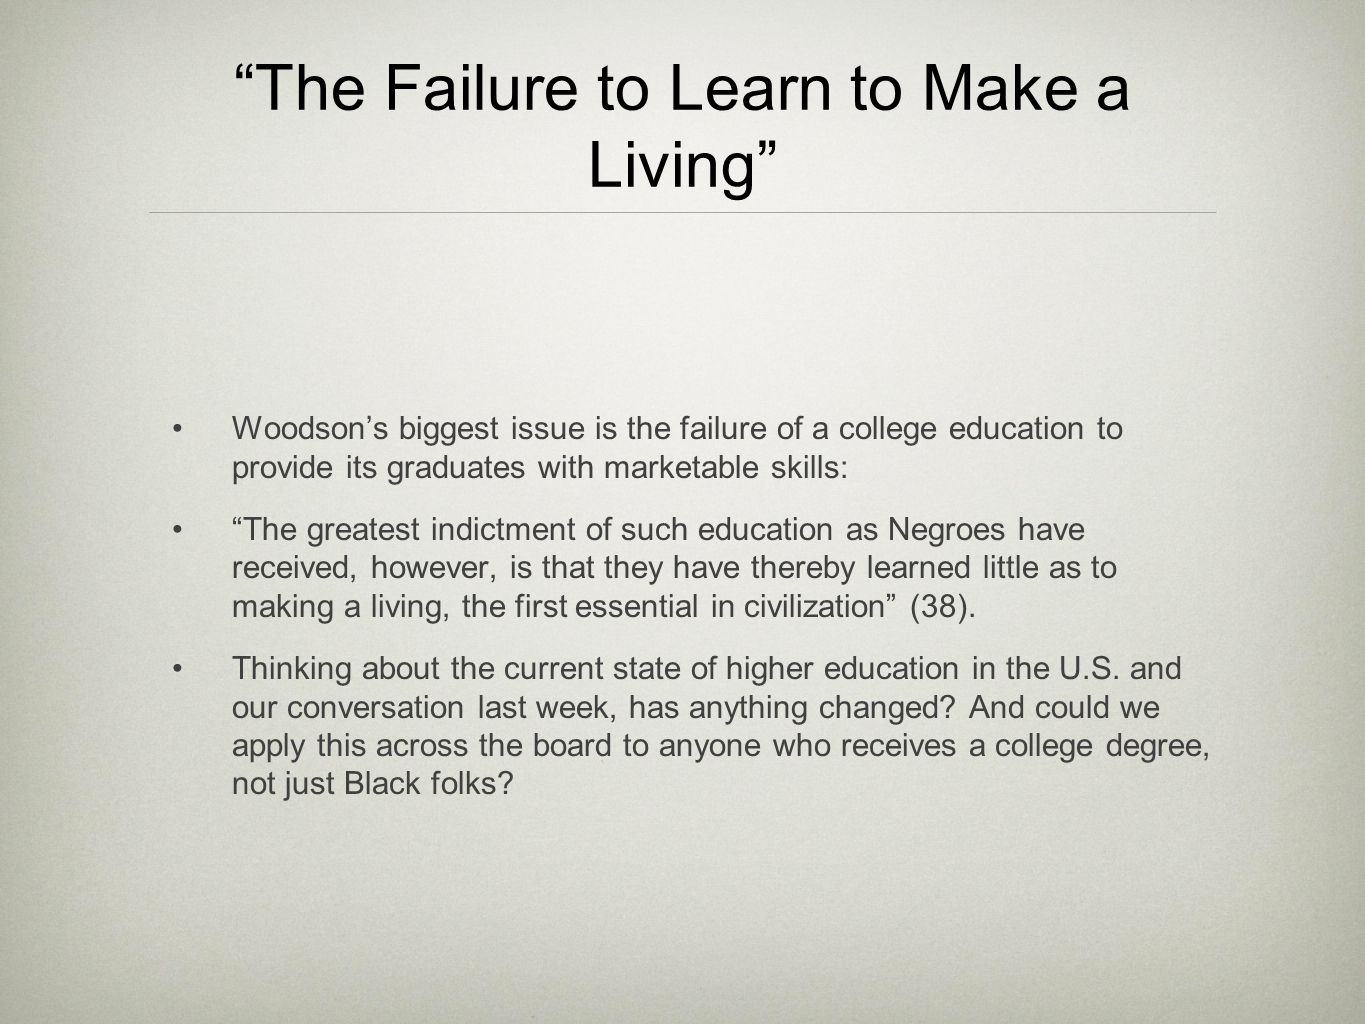 The Failure to Learn to Make a Living